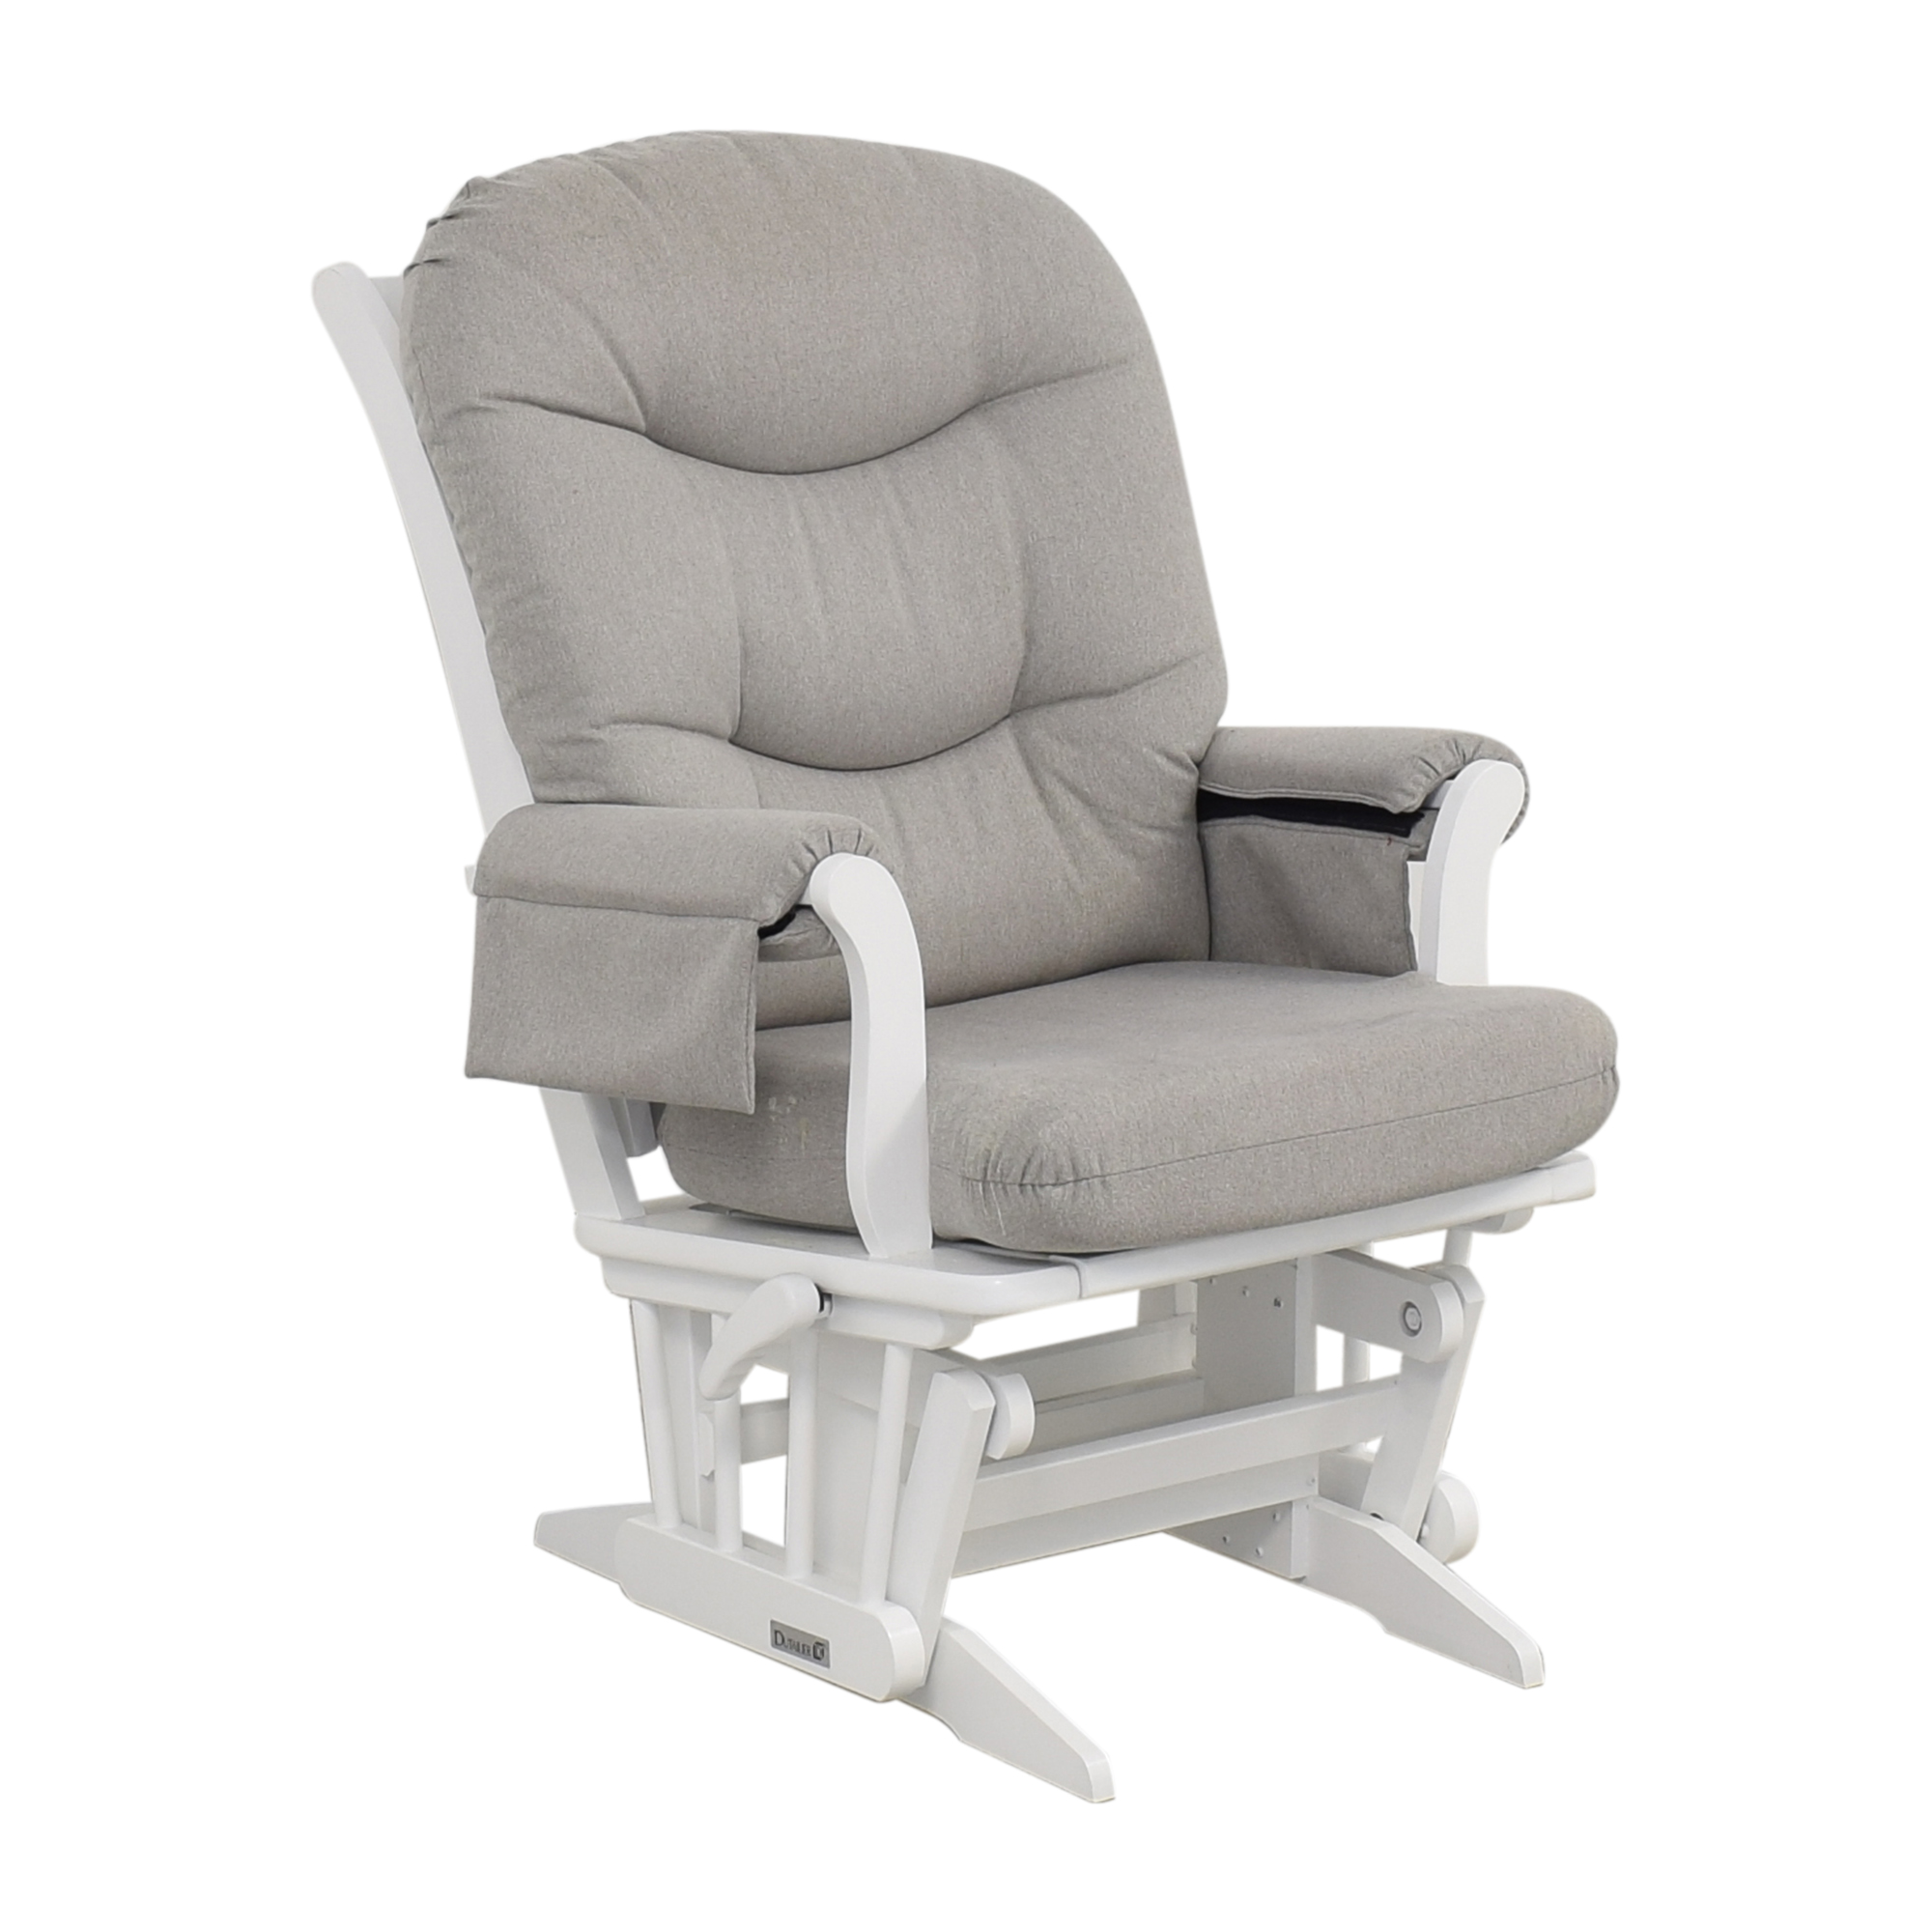 Dutailier Dutailier Multi-Position Reclining Sleigh Glider and Nursing Ottoman discount